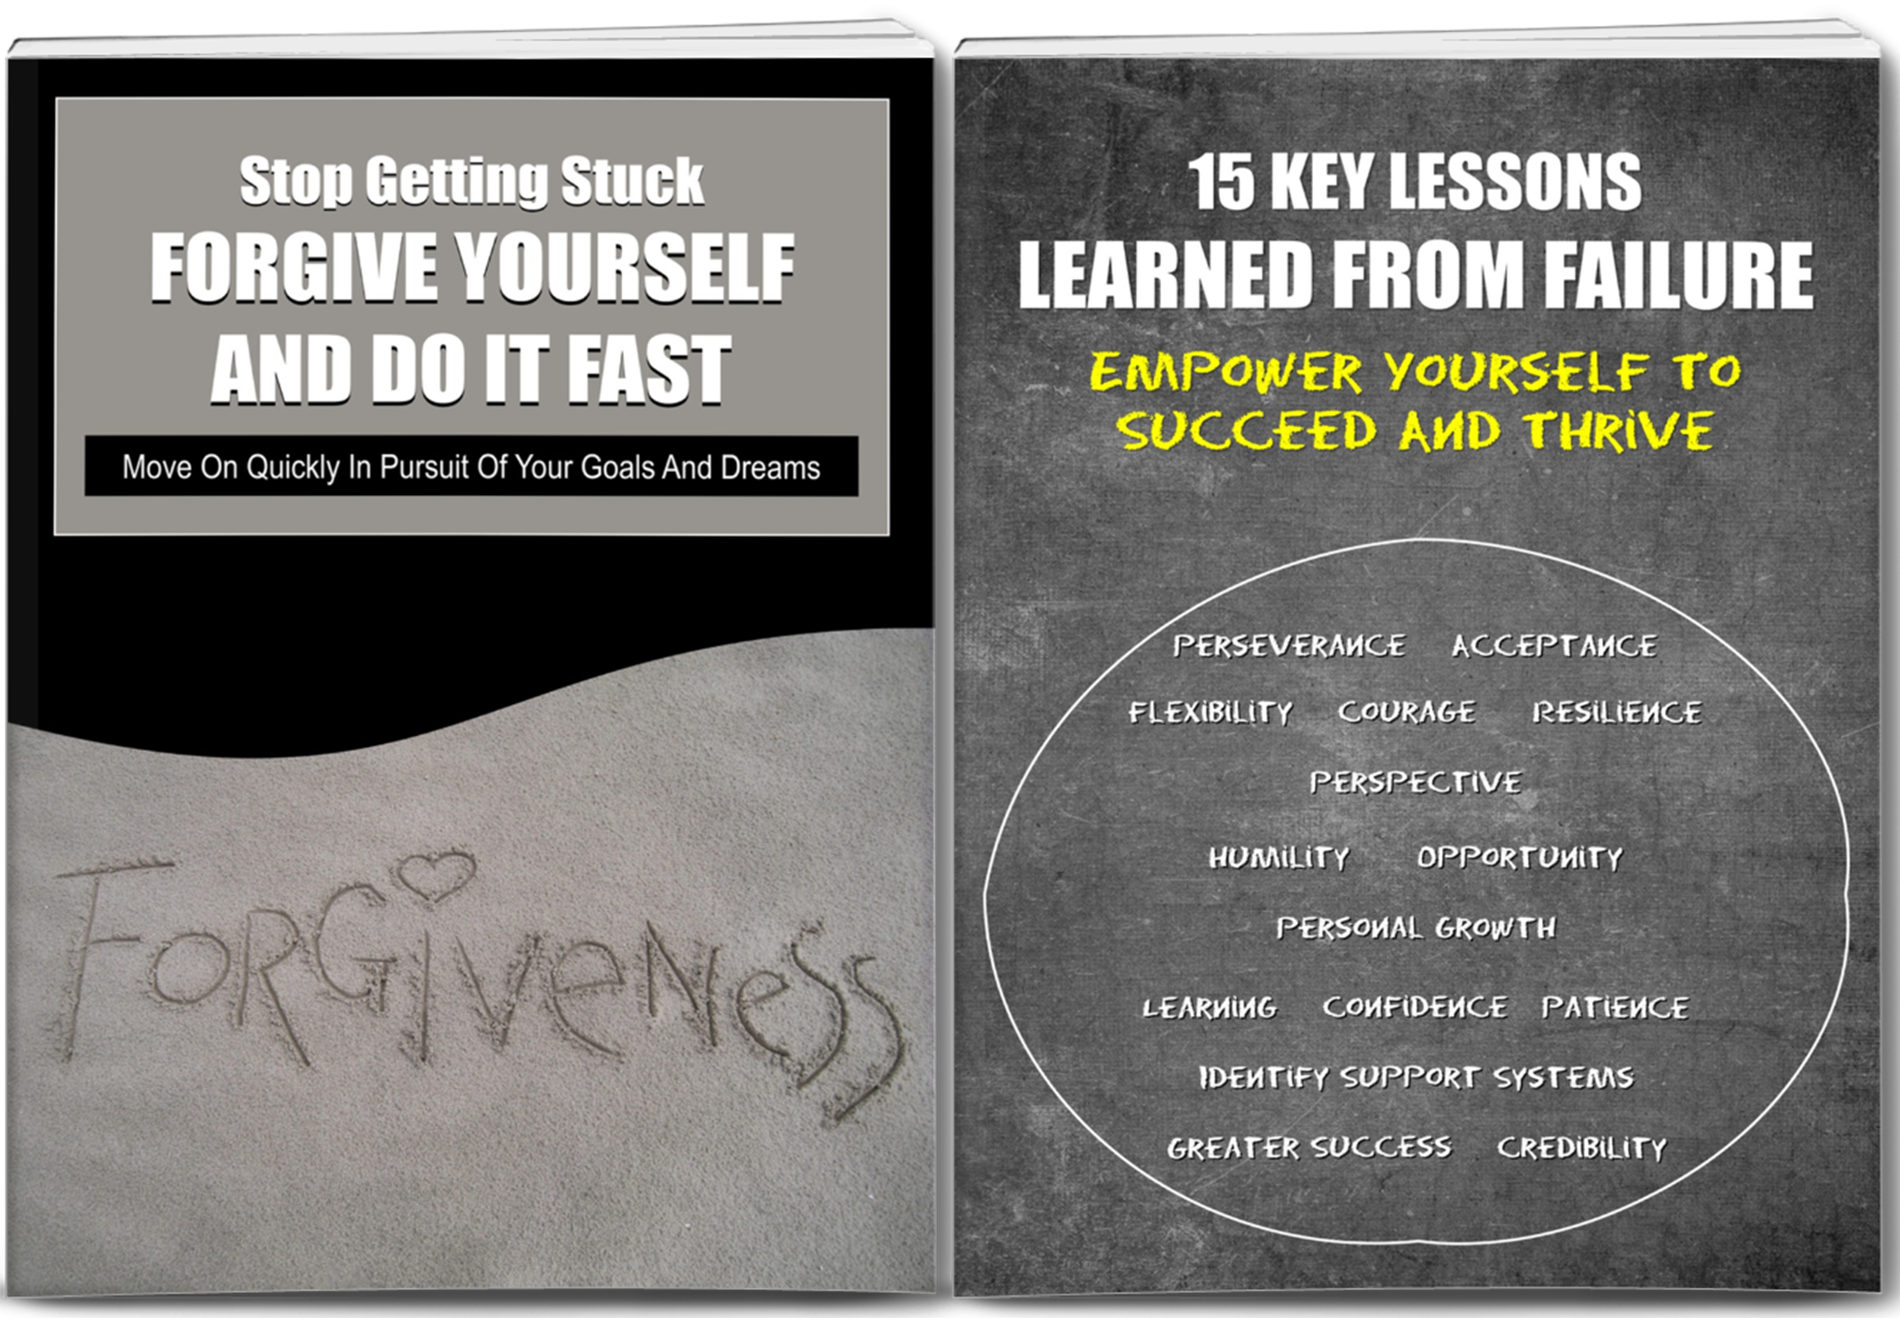 learn-from-failure-and-forgive-yourself-plr